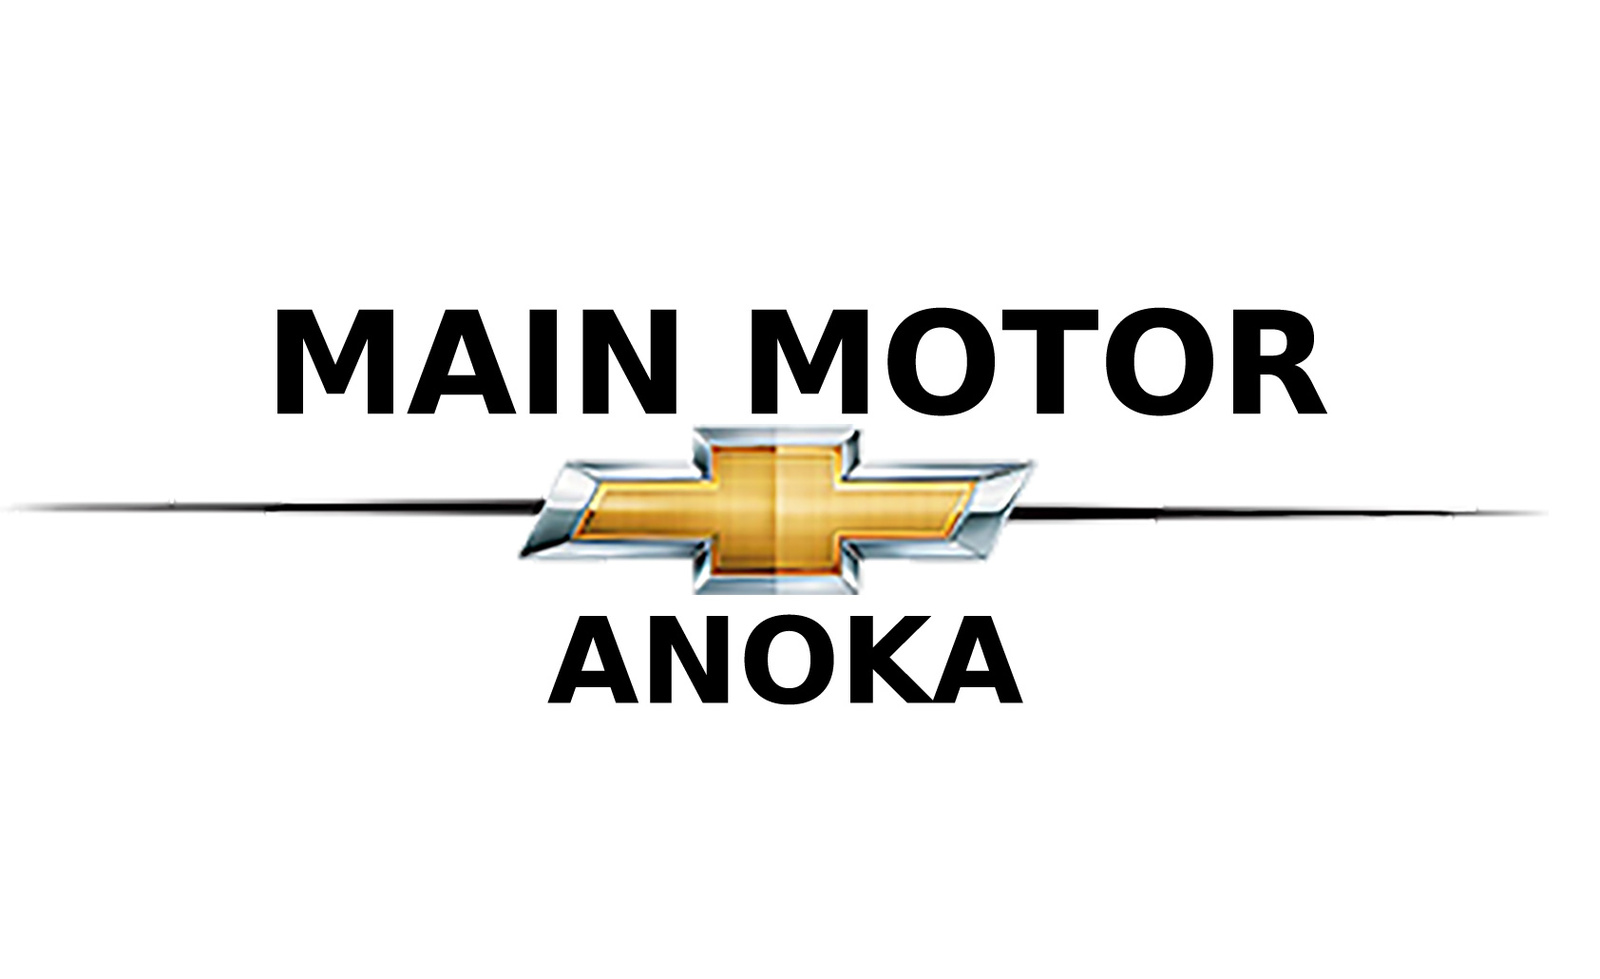 Hyundai Dealers Mn >> Main Motor Chevrolet - Anoka, MN: Read Consumer reviews ...